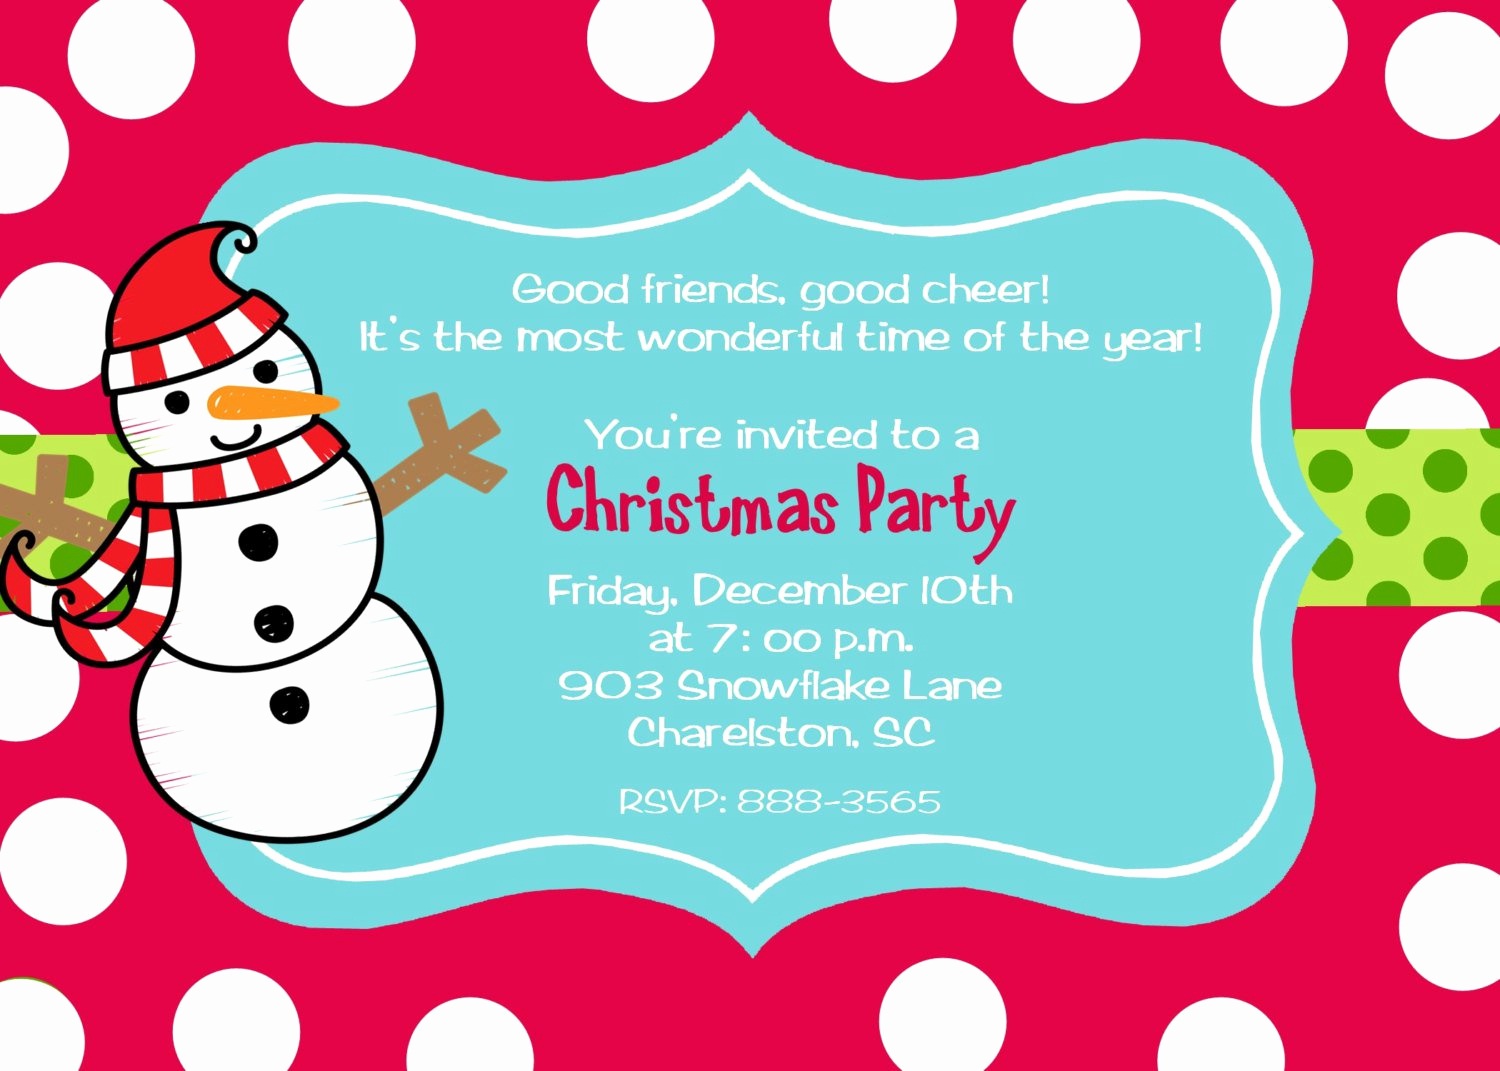 Funny Christmas Party Invitation Wording New Christmas Party Invitation Wording Humorous